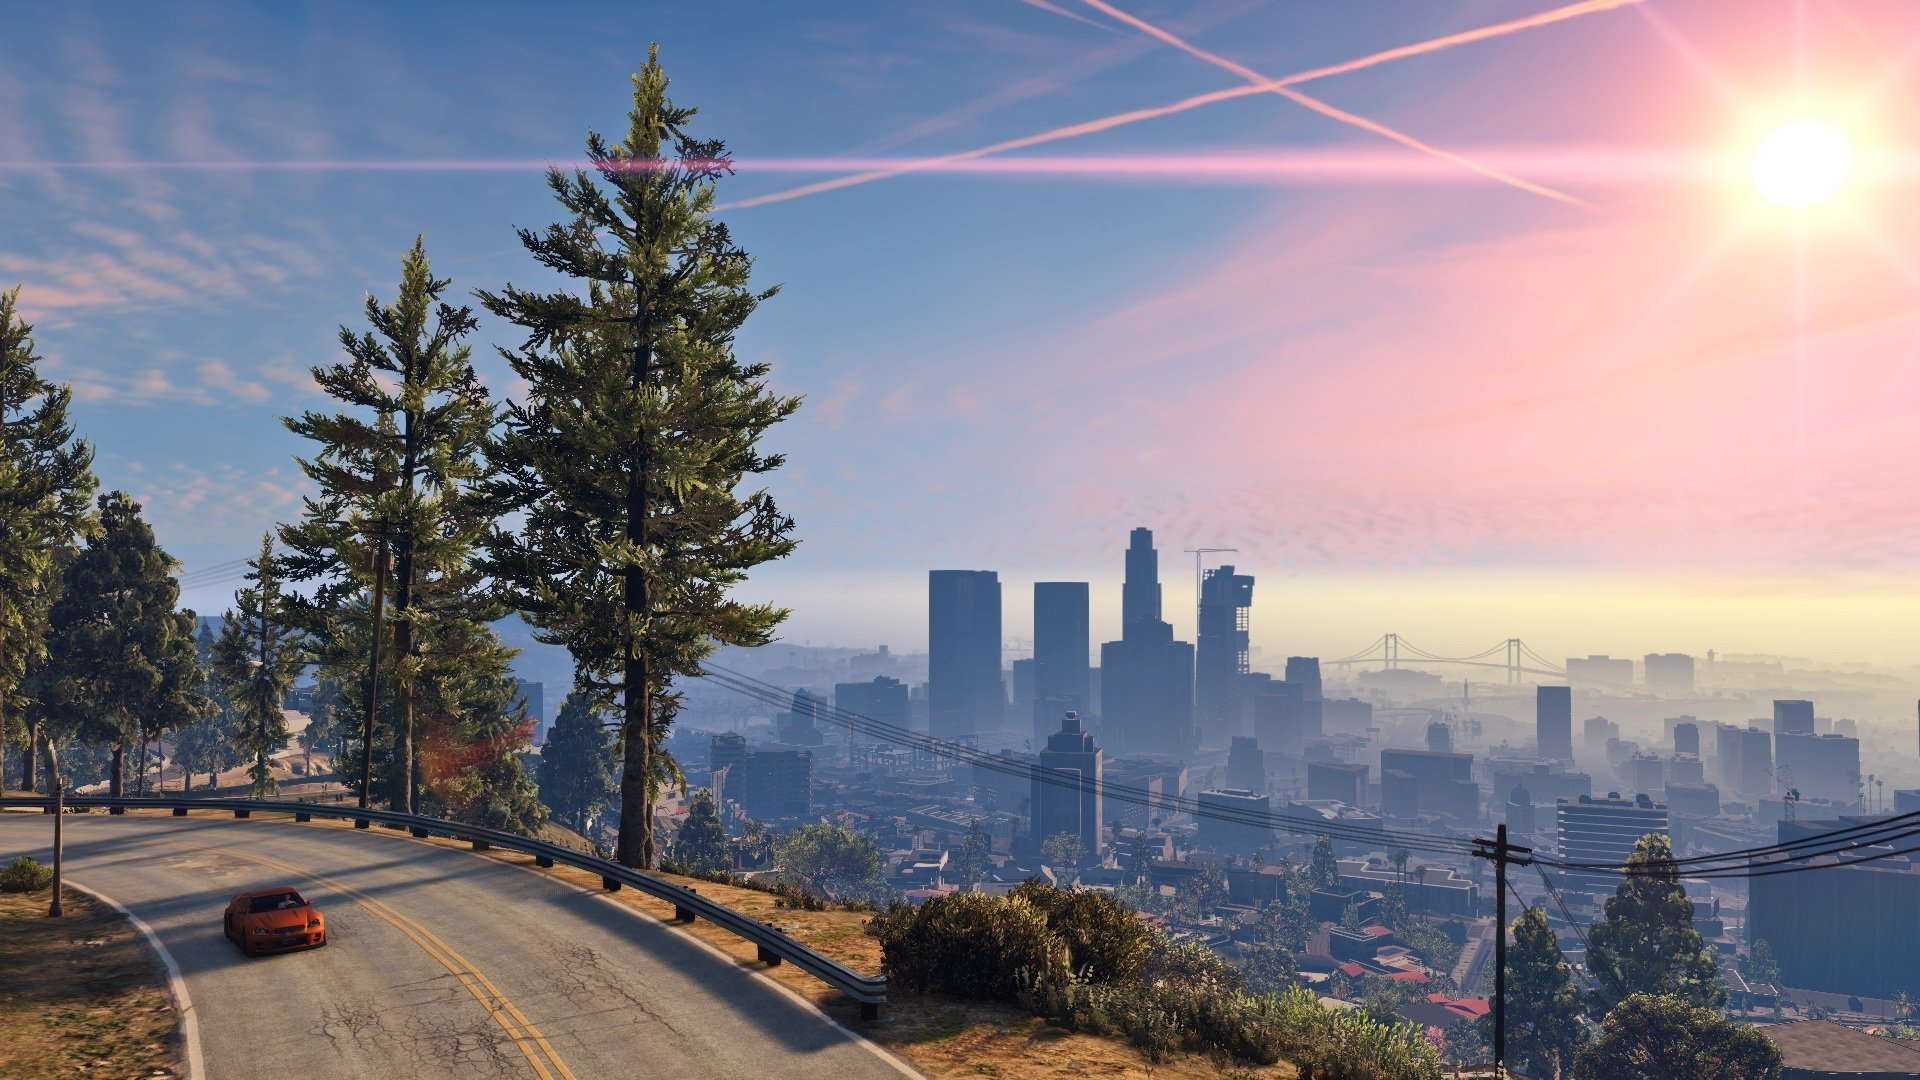 485 grand theft auto v hd wallpapers | background images - wallpaper